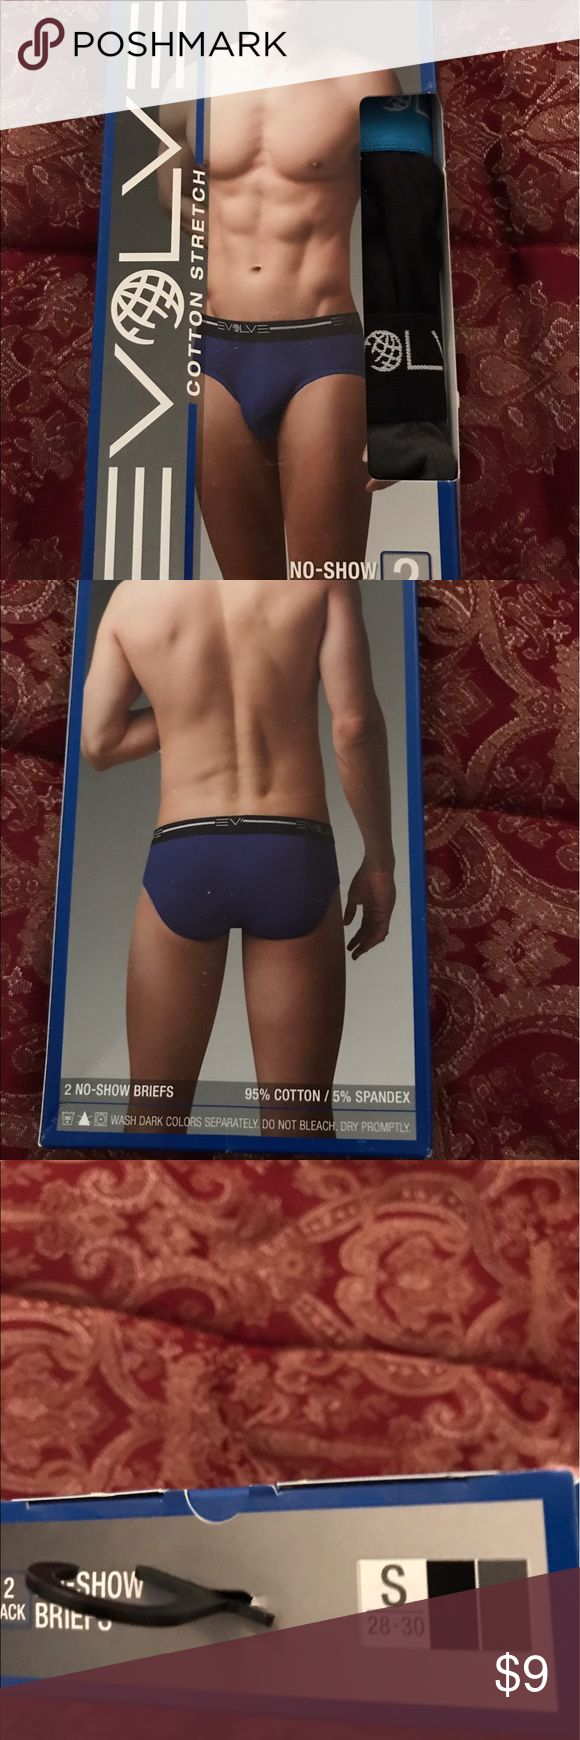 "Men's Evolve No Show Briefs Underwear 2 pack small Men's Evolve No Show Briefs Underwear by 2xist....size small....fits waist 28"" to 30 inches.....95% cotton and 5% spandex.....2 pack....colors are black and gray......brand new, never opened! 2xist Underwear & Socks Briefs"